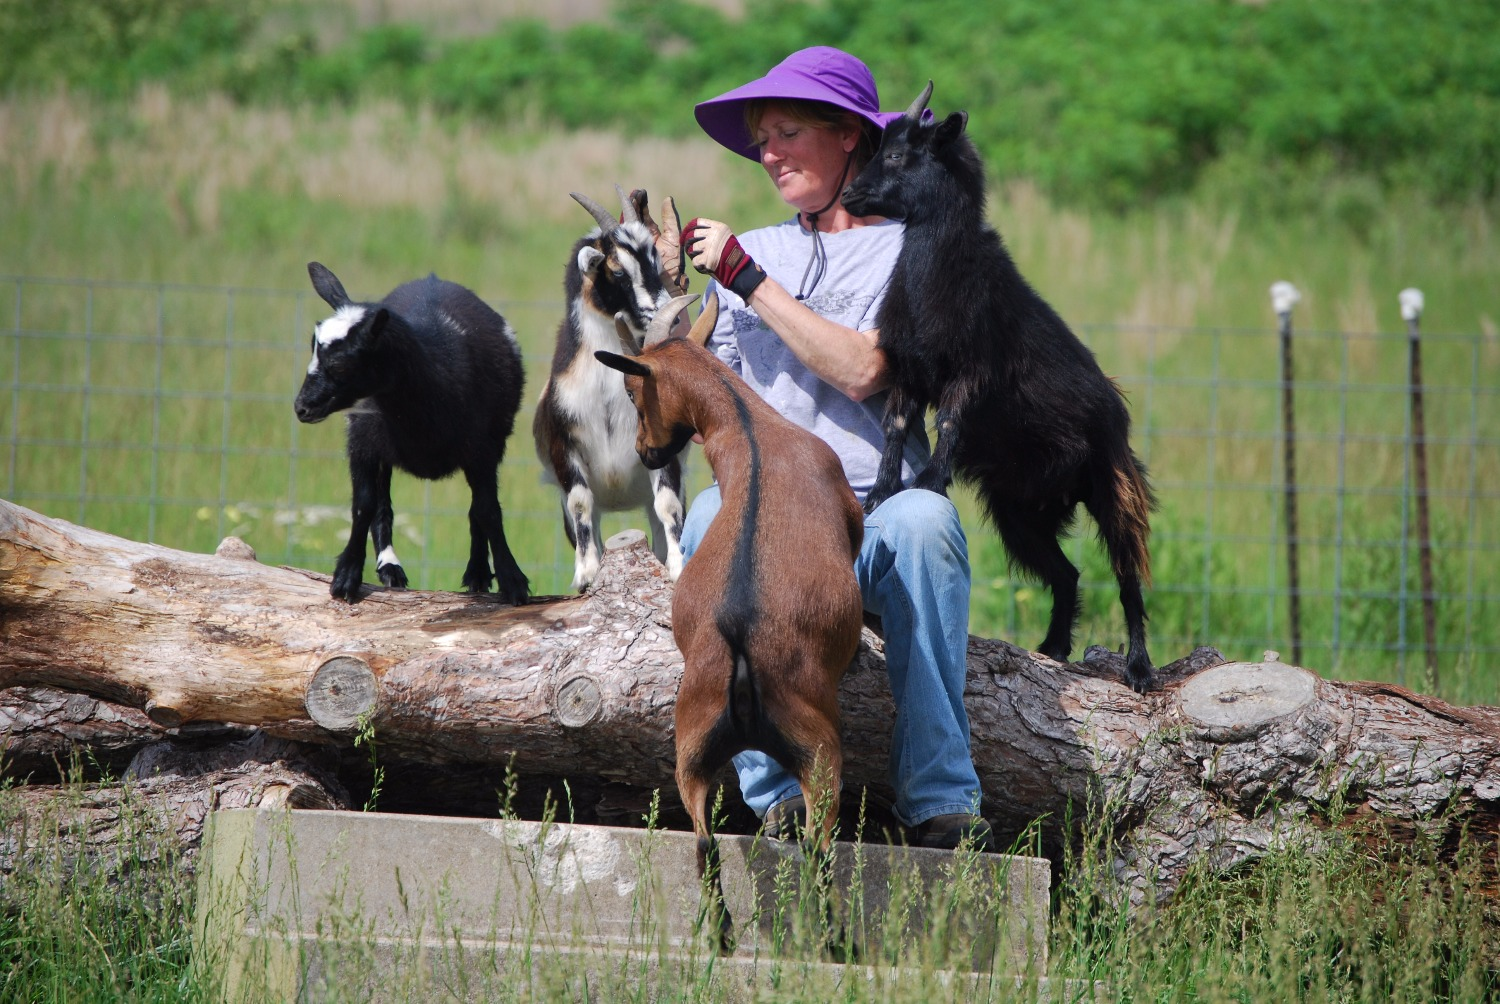 Just me and my goats